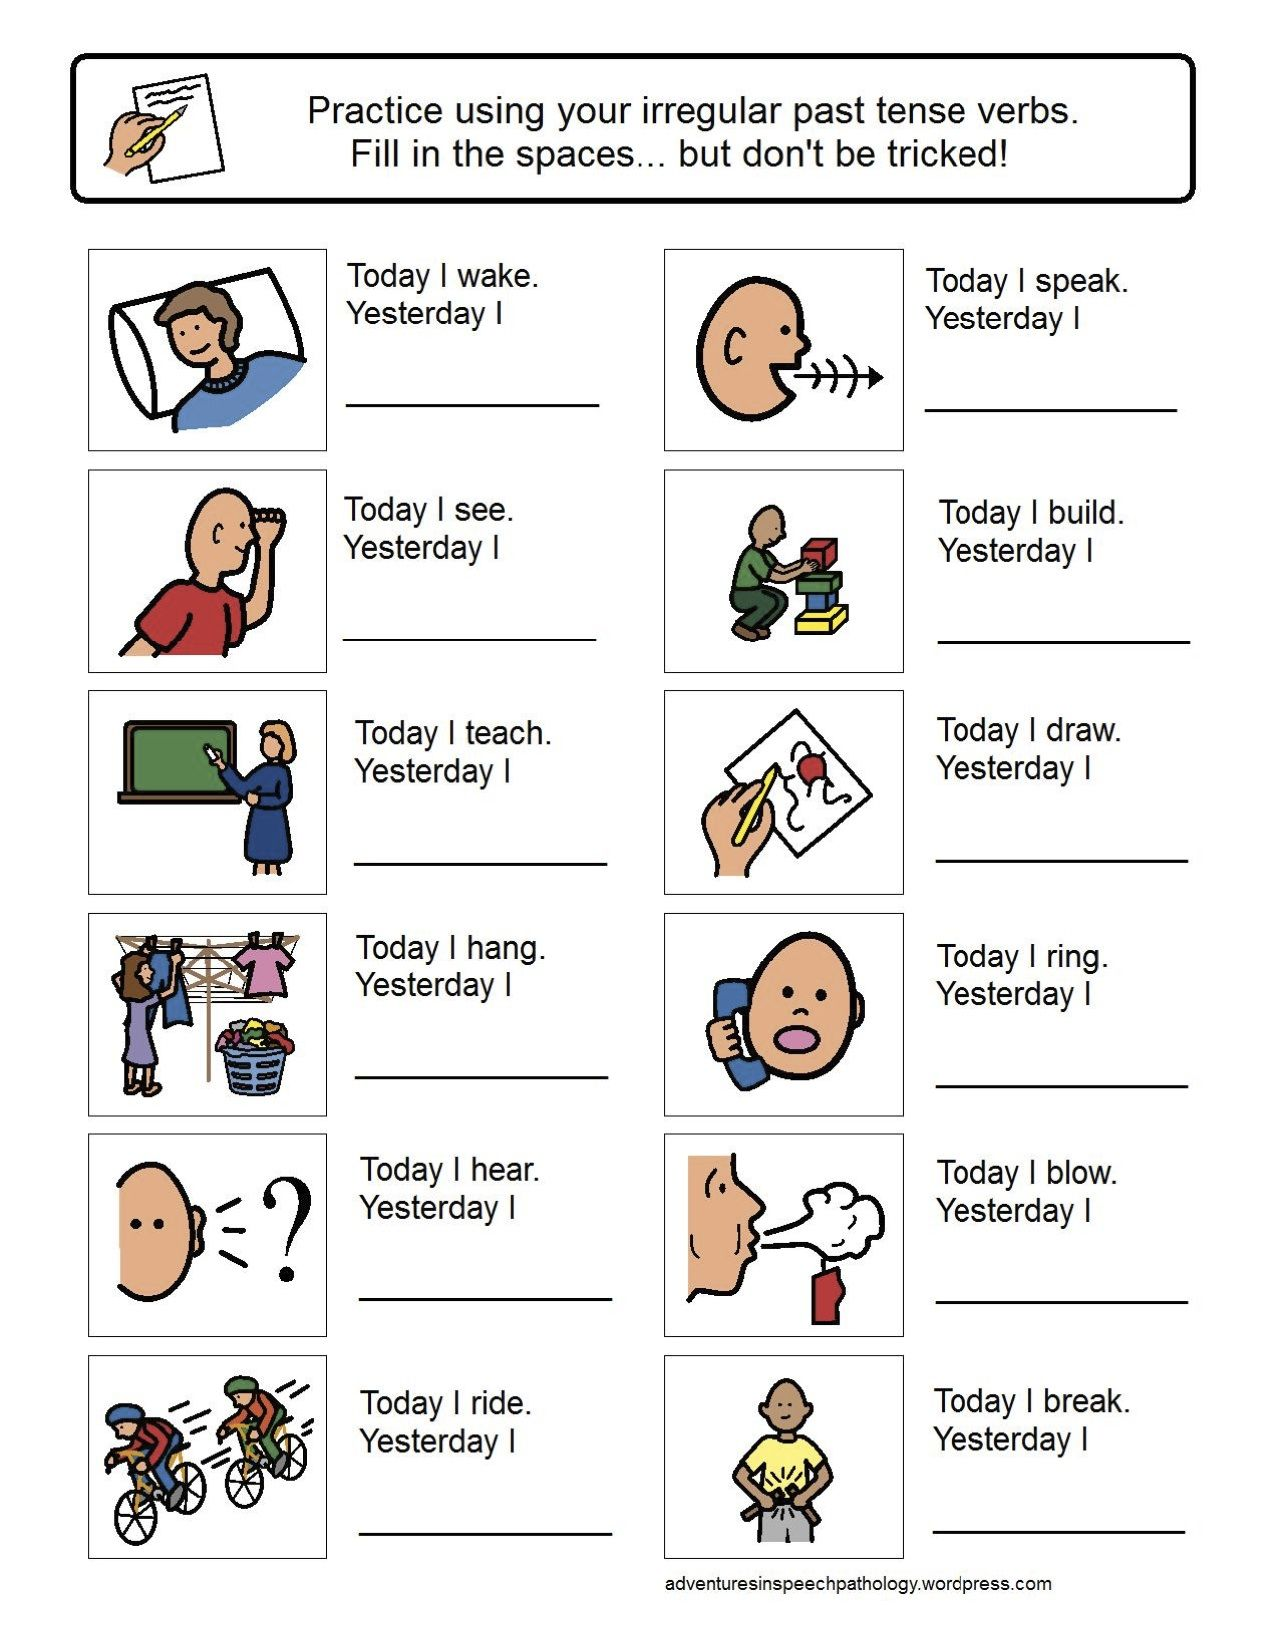 Today I Yesterday I Worksheets For Working On Irregular Past Tense Verbs Consultez Aussi